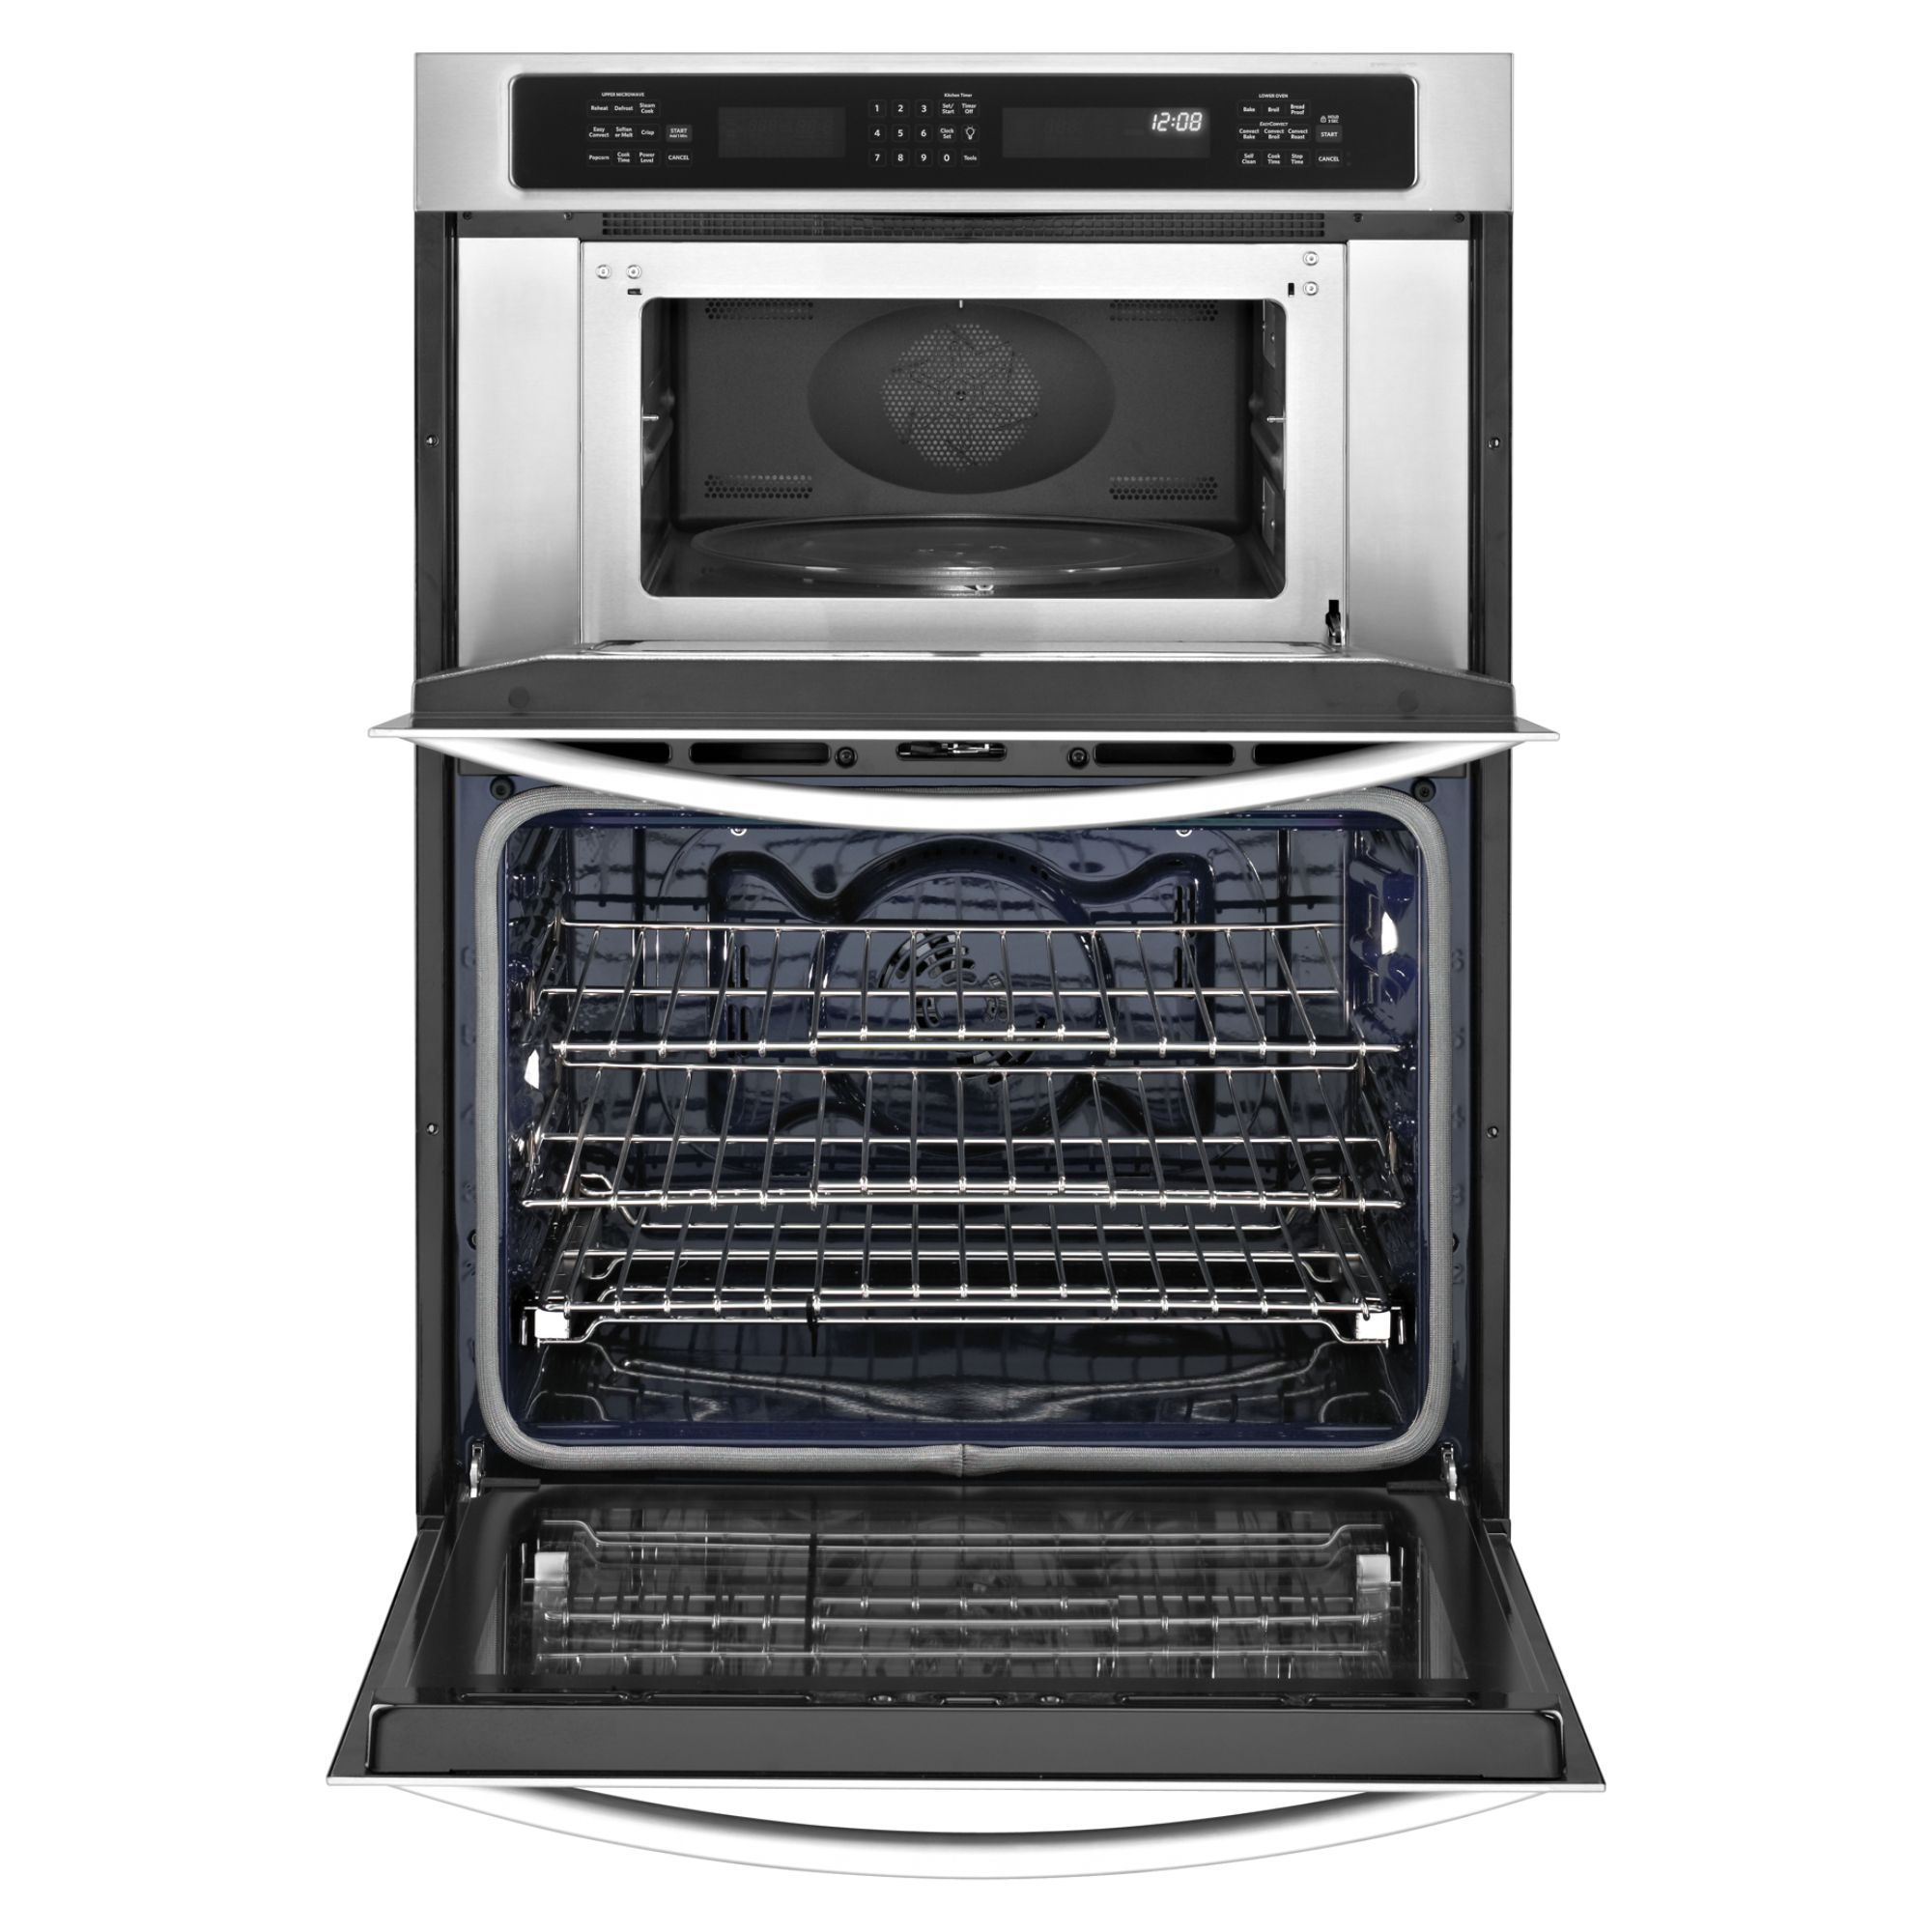 "KitchenAid 27"" Built-In Combination Wall Oven w/ Even-Heat™ True Convection Lower Oven - White"